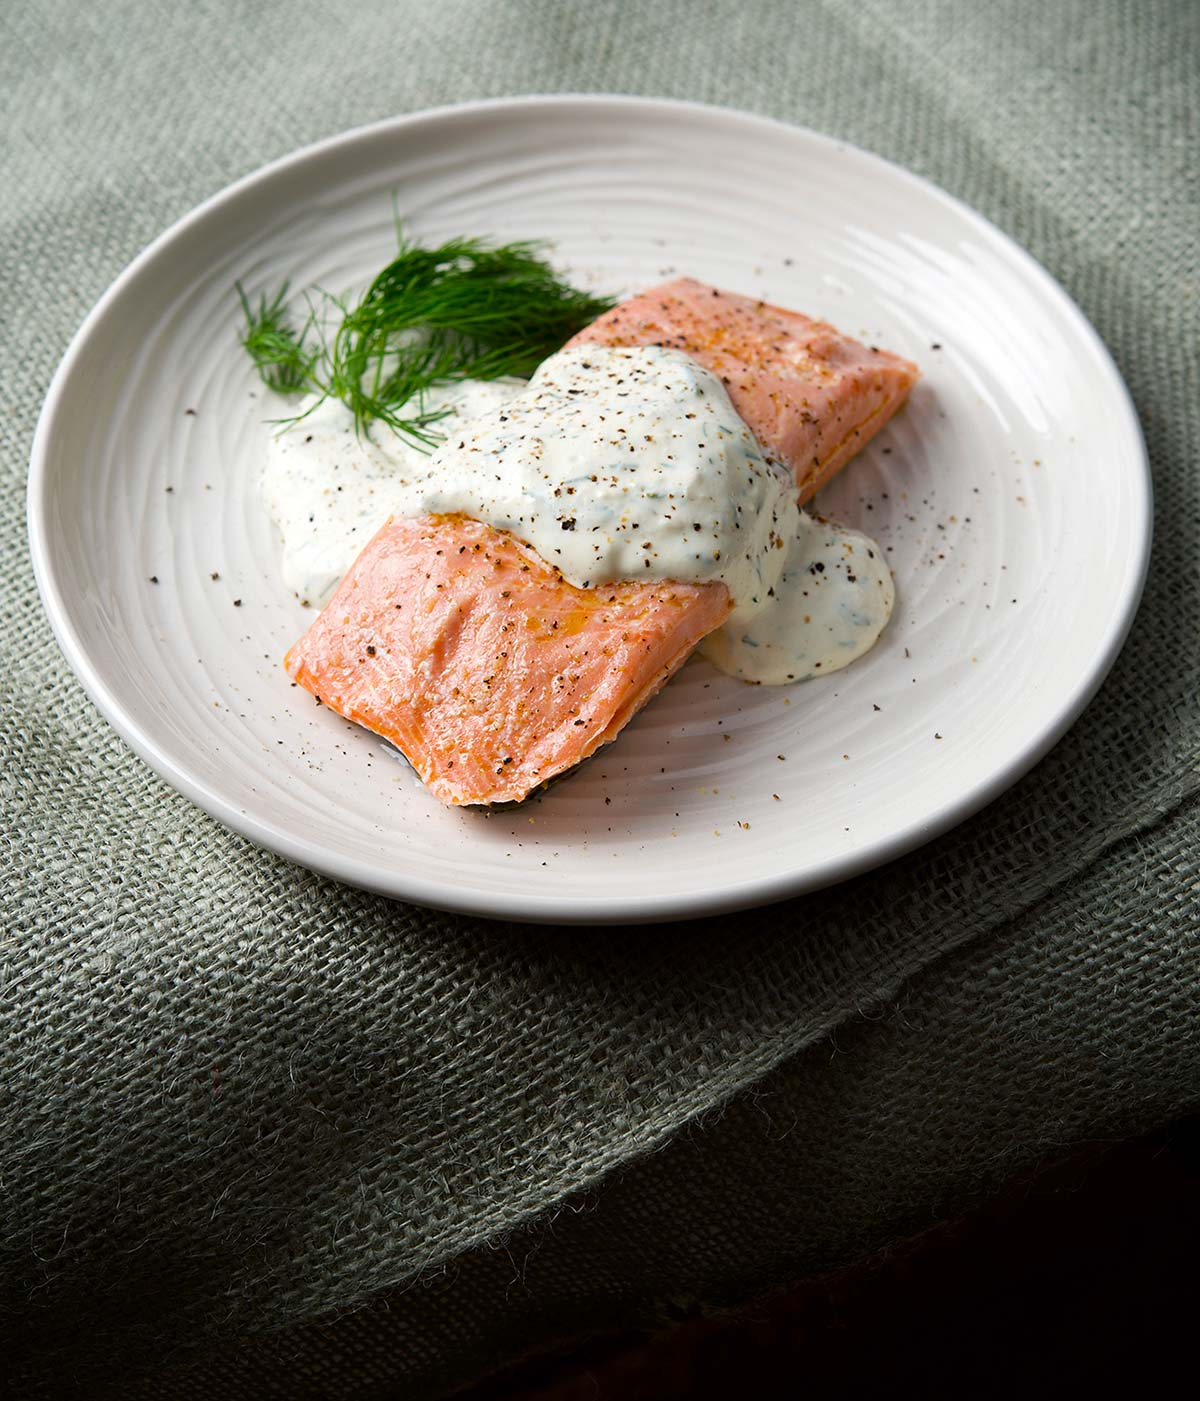 Butter poached salmon with dill sauce on a plate